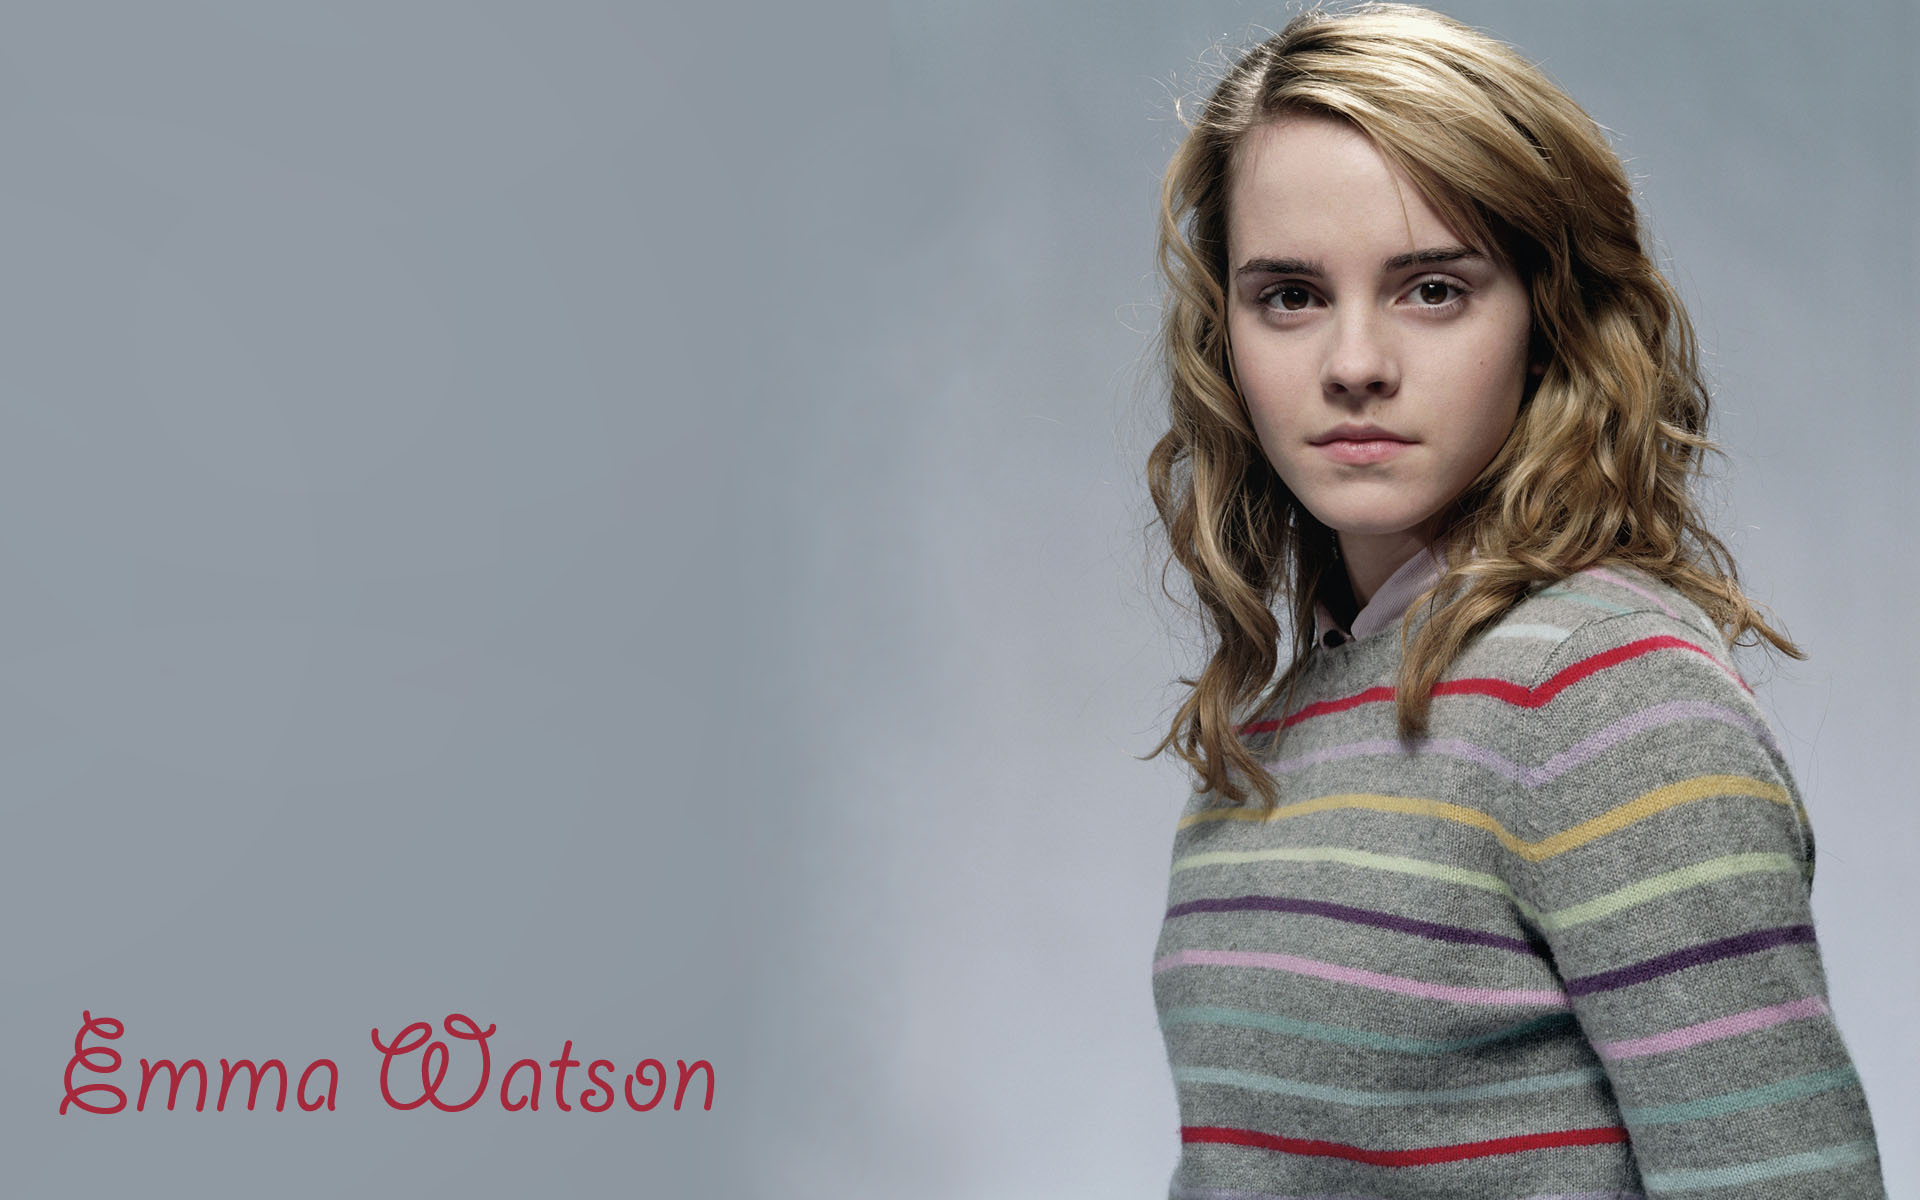 Emma Watson Wide High Quality (2) 493.47 Kb